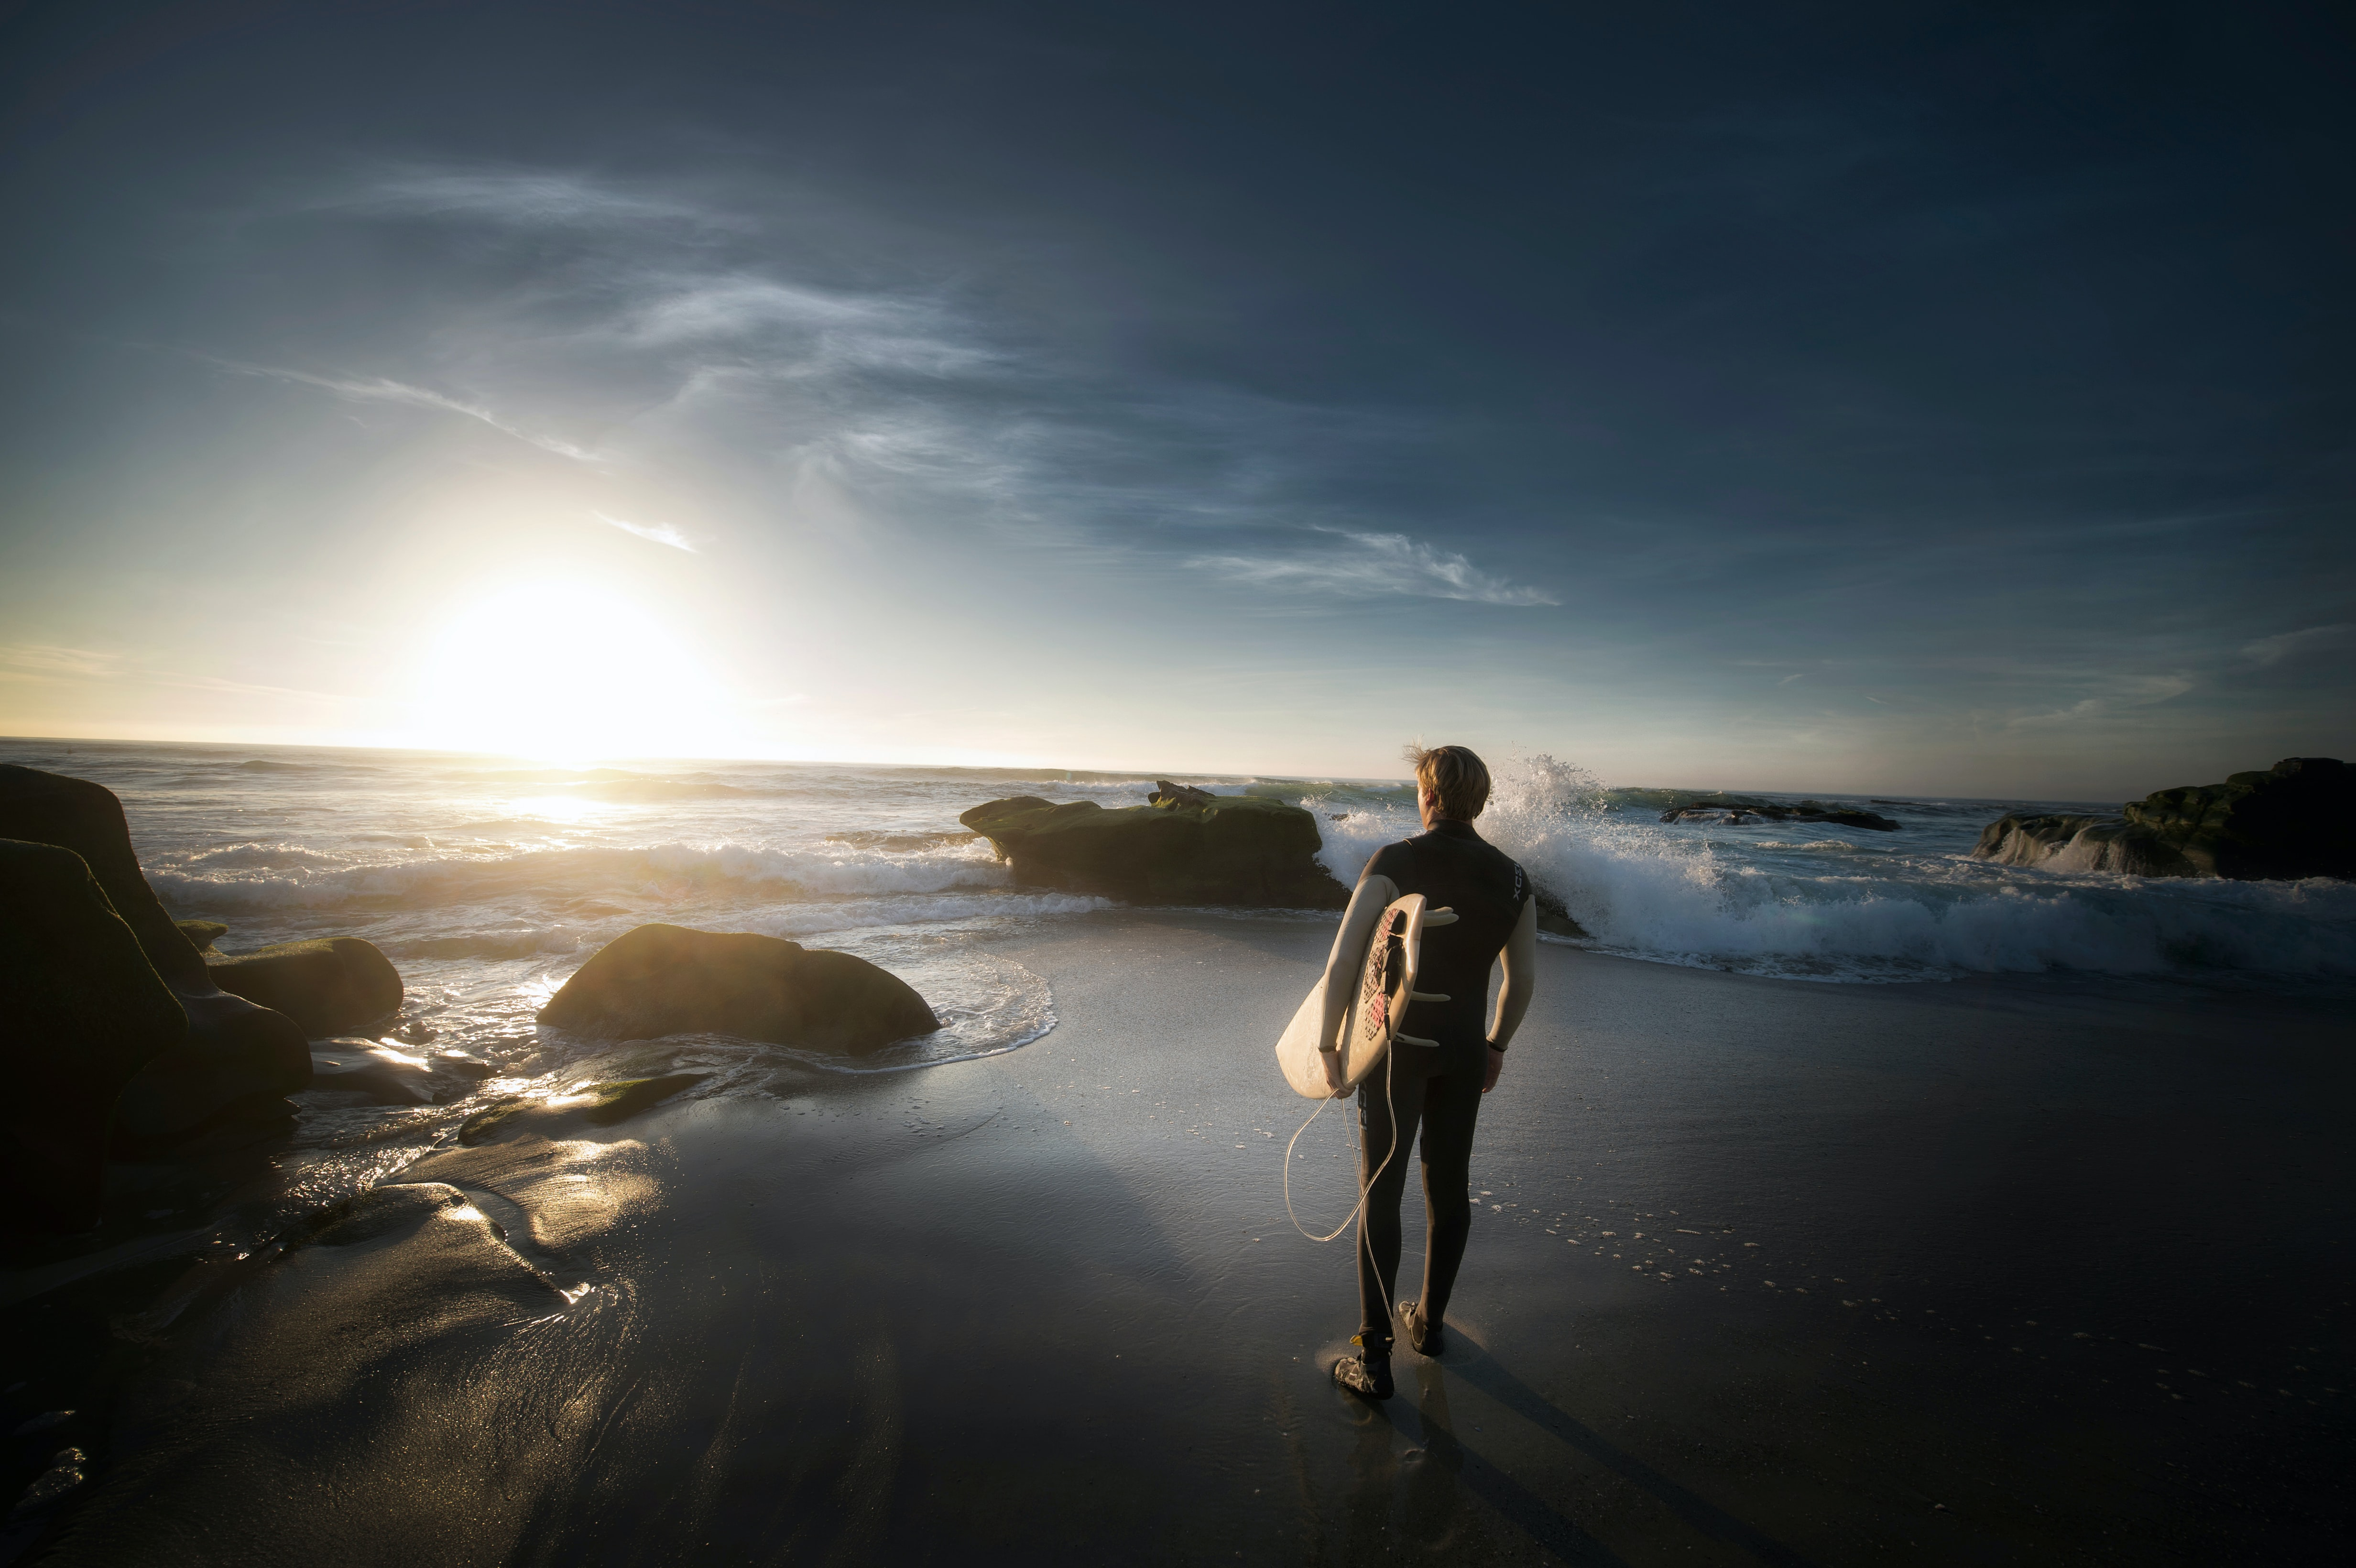 Surfer with surfboard in wetsuit standing on the wet sand beach looking at the sunset in San Diego